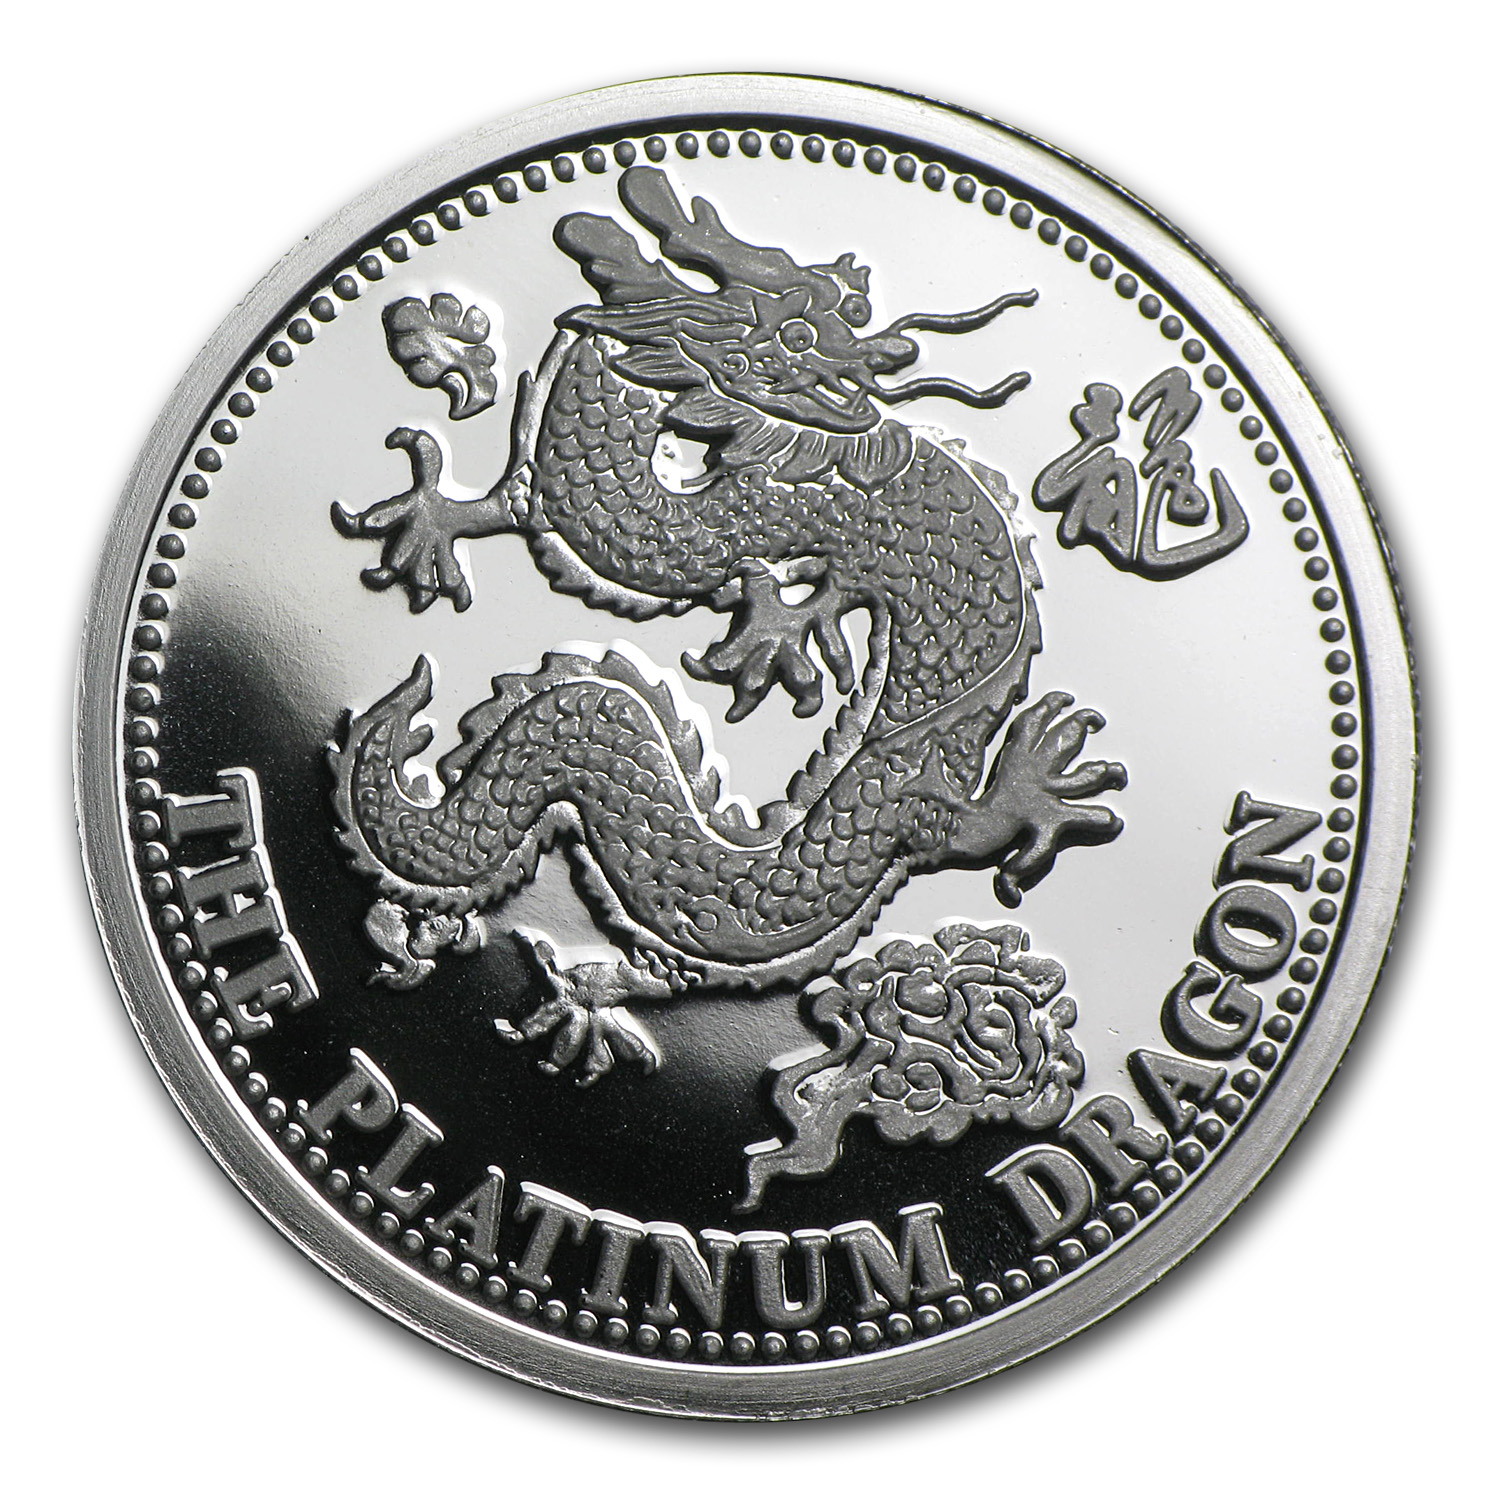 1988 1 oz Johnson Matthey Dragon Platinum Round .9995 Fine